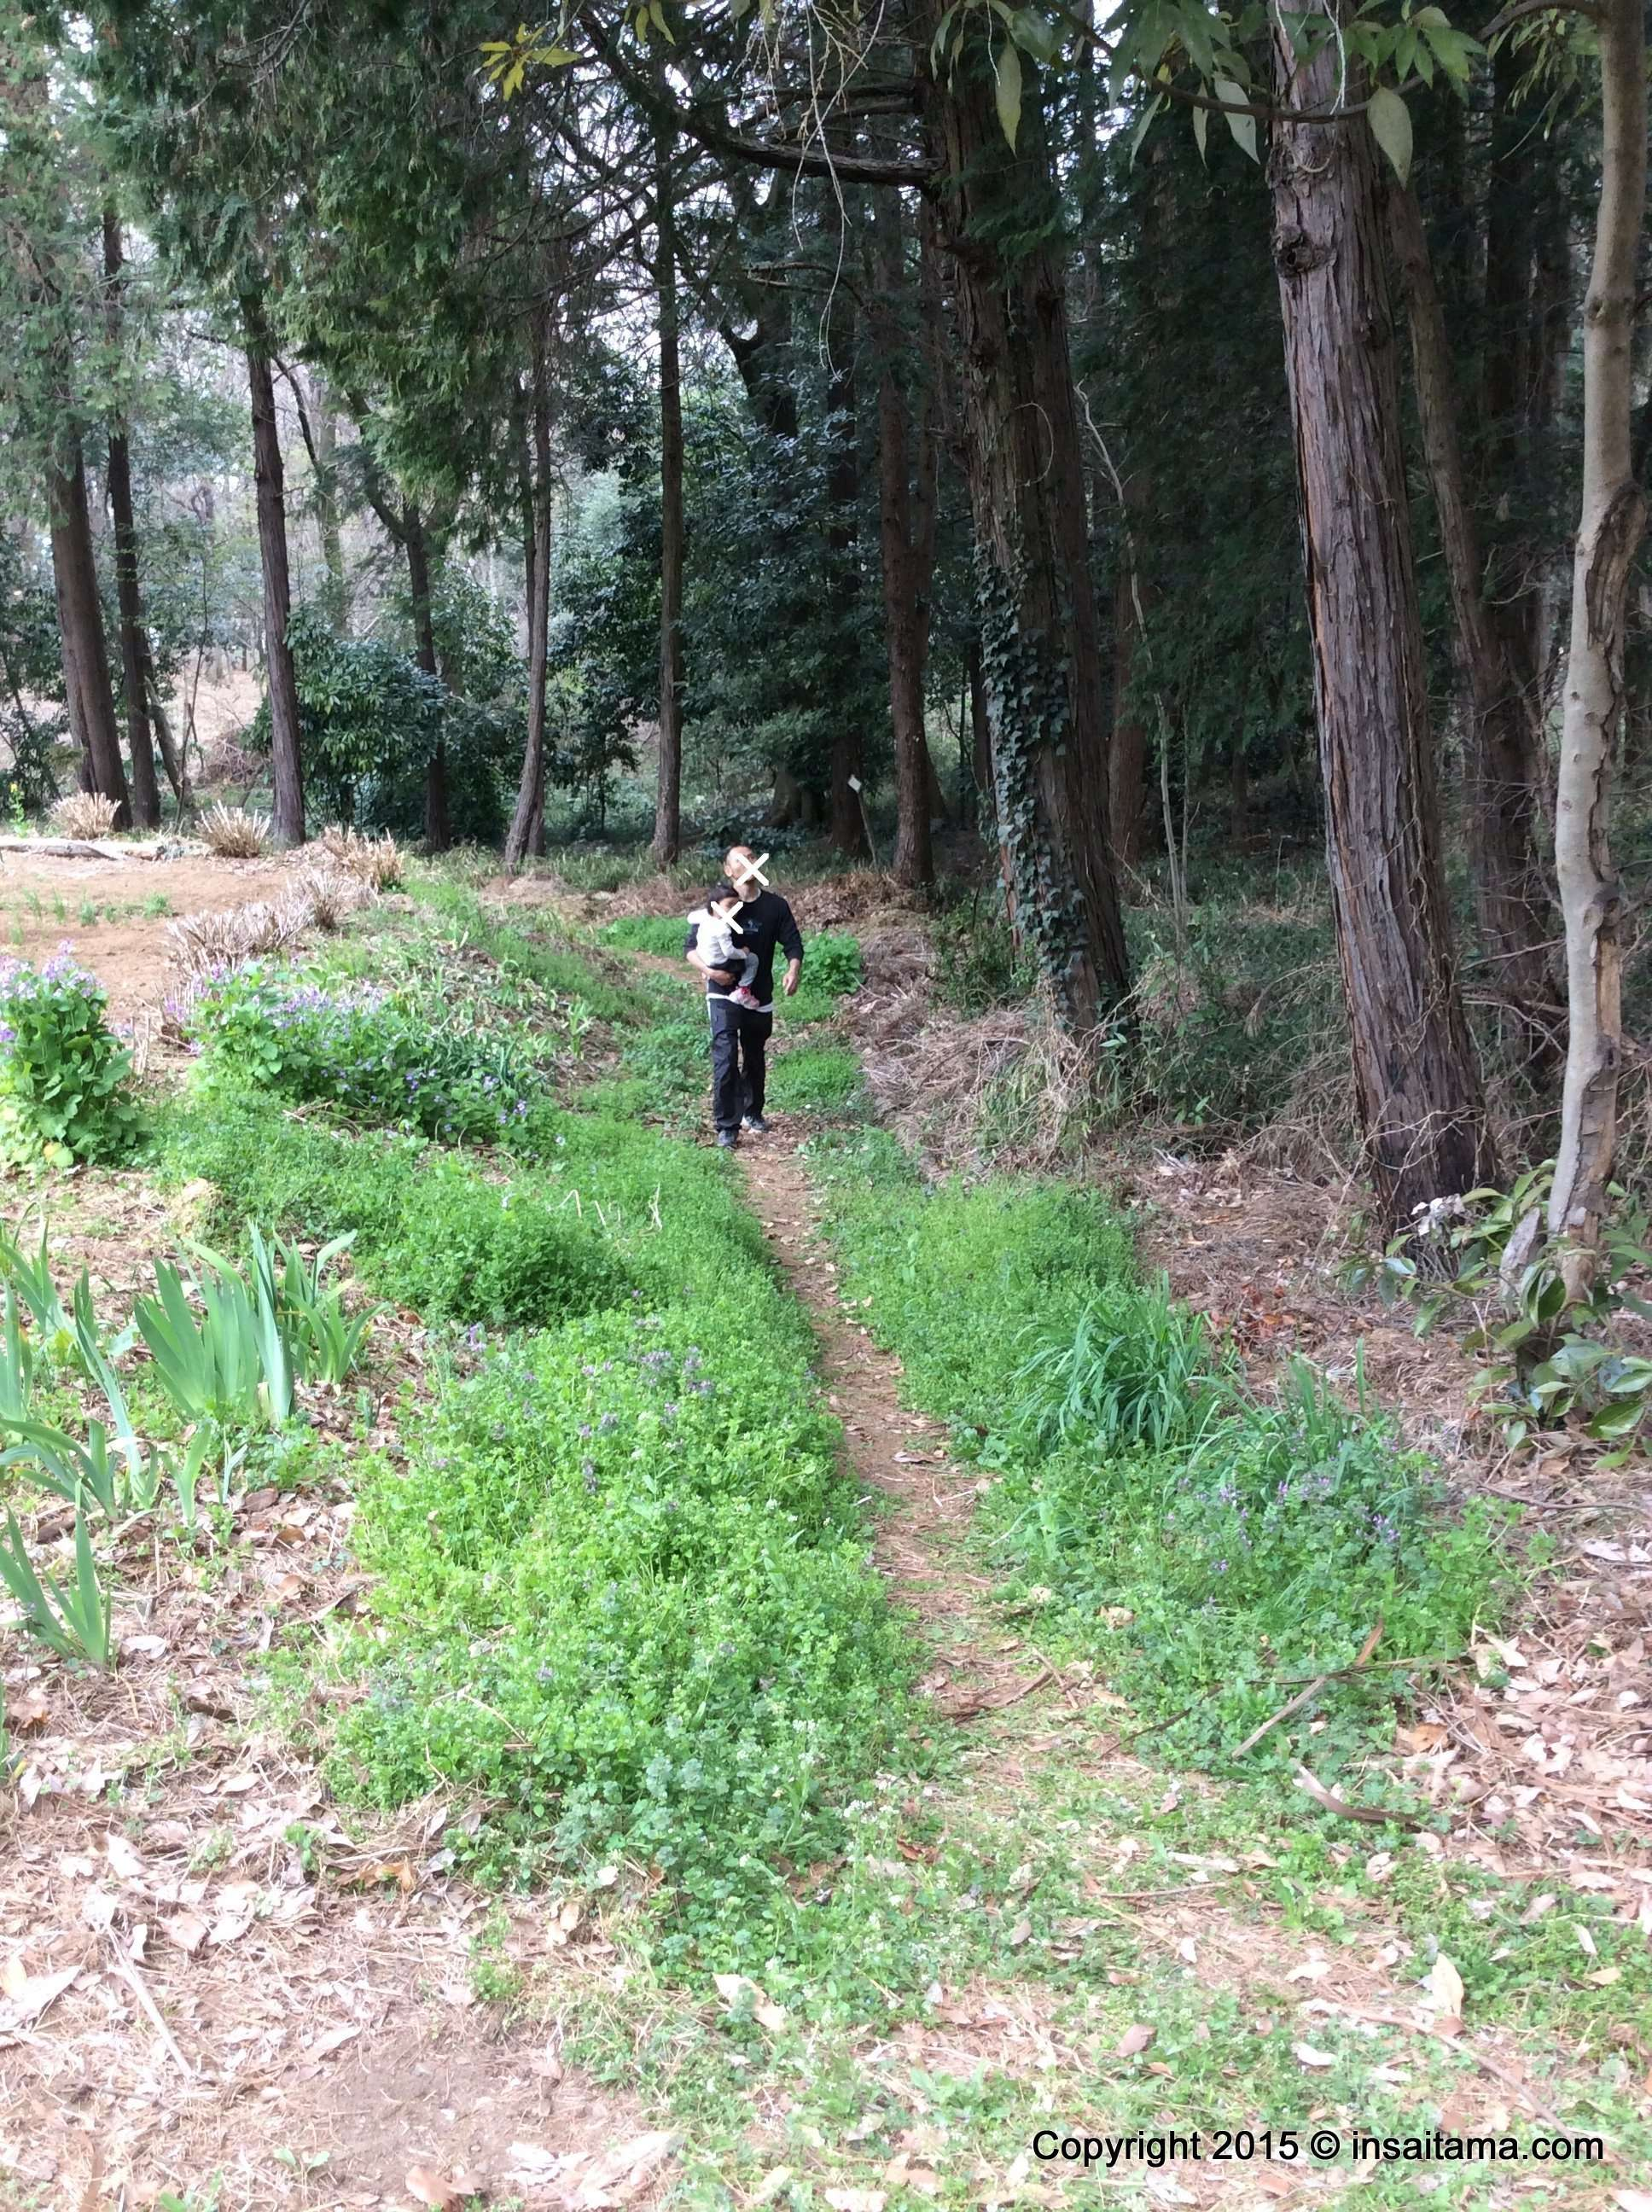 The forest in Hidaka Sougou Park, ideal for bug hunting in the summer and acorns in the winter